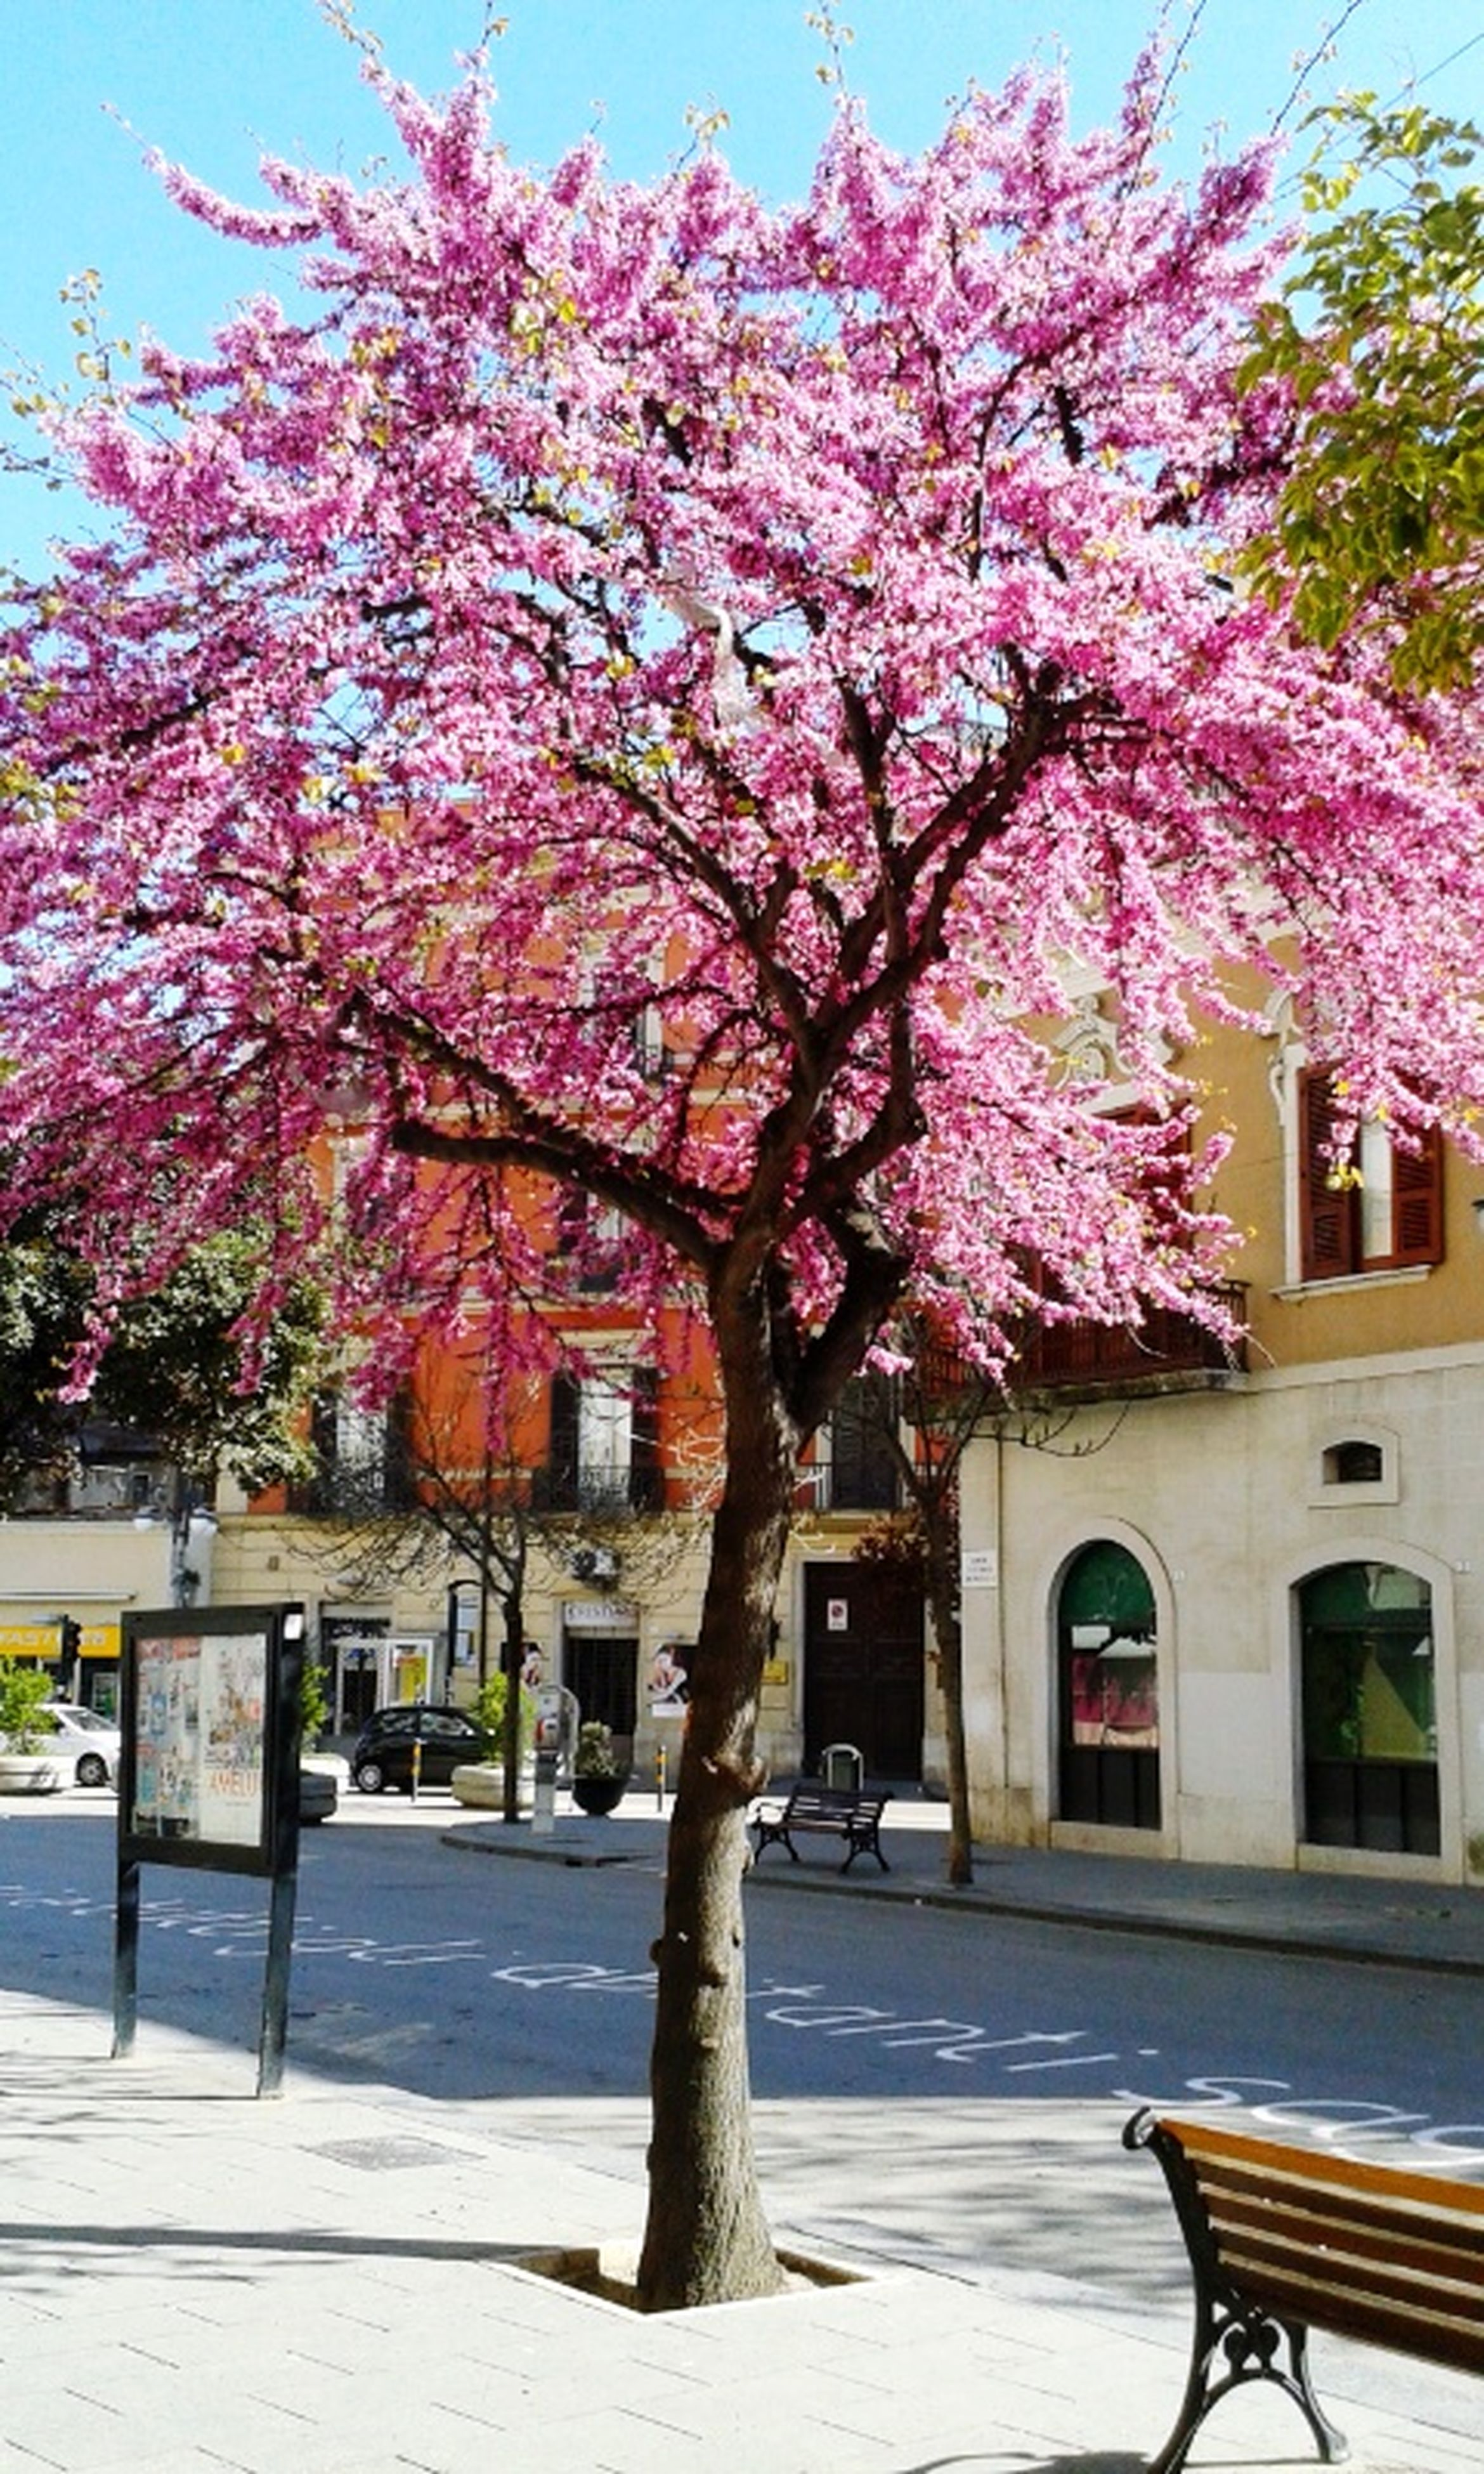 flower, tree, building exterior, built structure, architecture, branch, growth, freshness, blossom, pink color, nature, fragility, beauty in nature, cherry blossom, city, sky, sunlight, in bloom, cherry tree, day